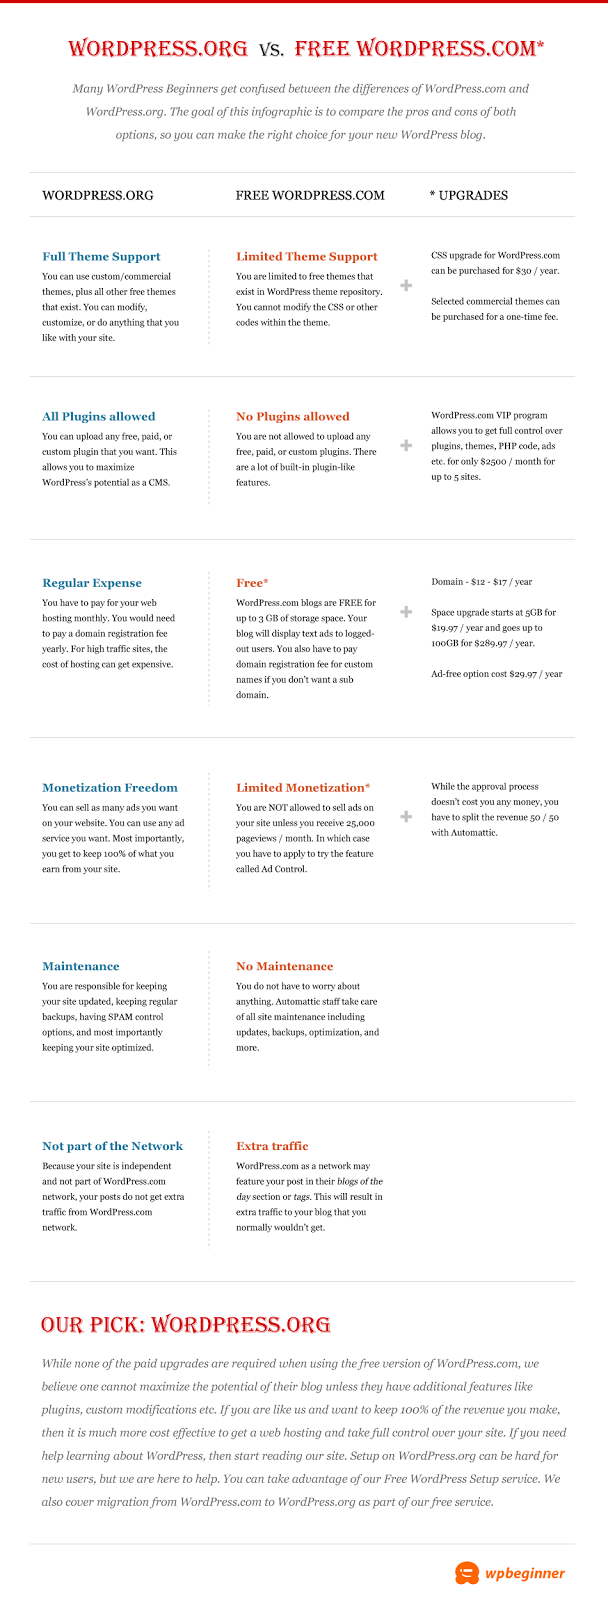 Infography of Self Hosted WordPress.org OR Free WordPress.com